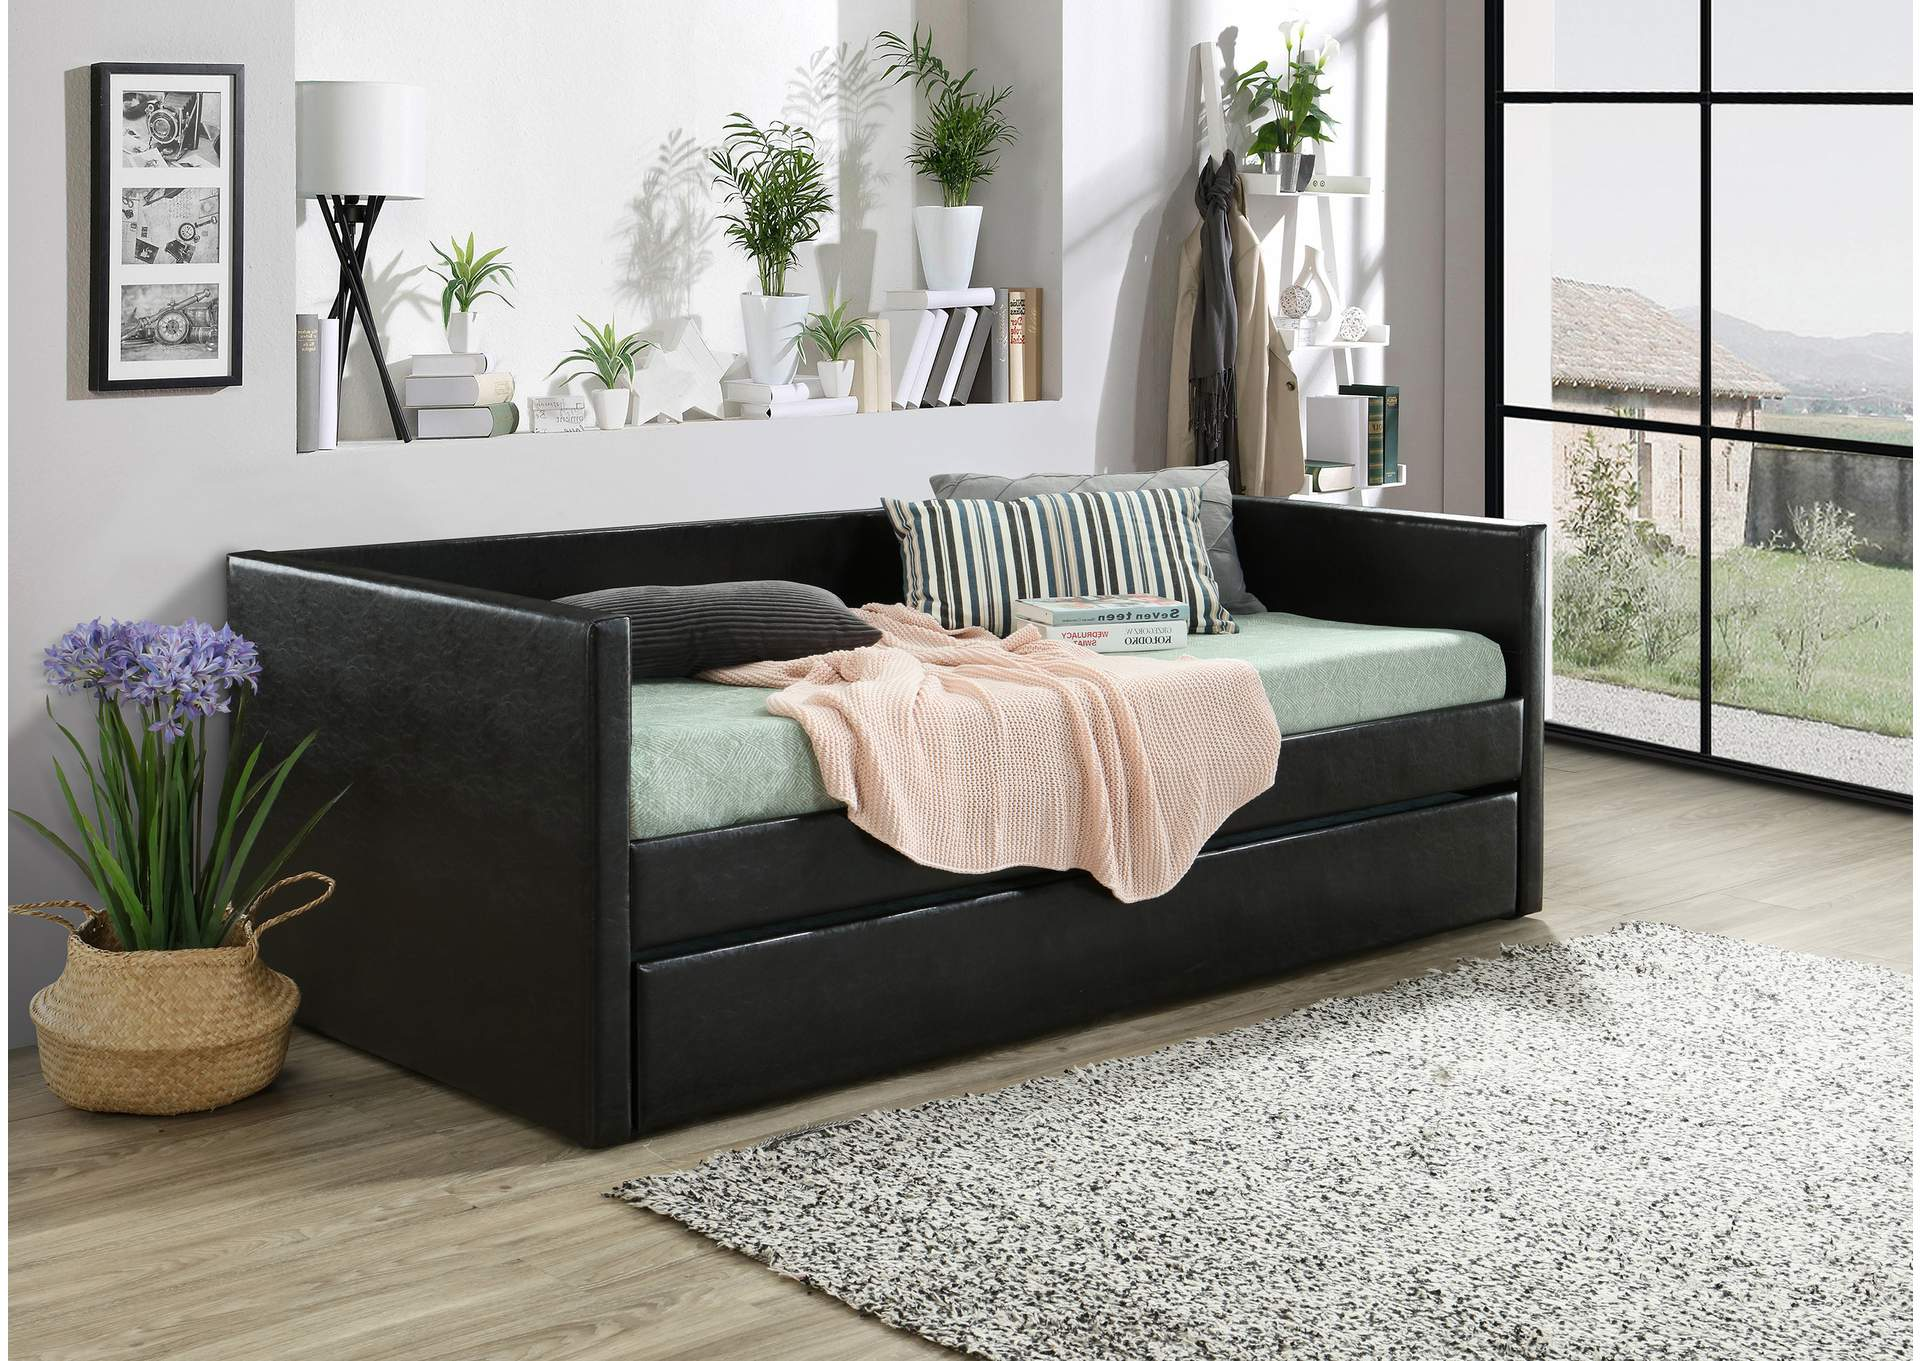 Sadie Expresso Upholstered Daybed,Crown Mark